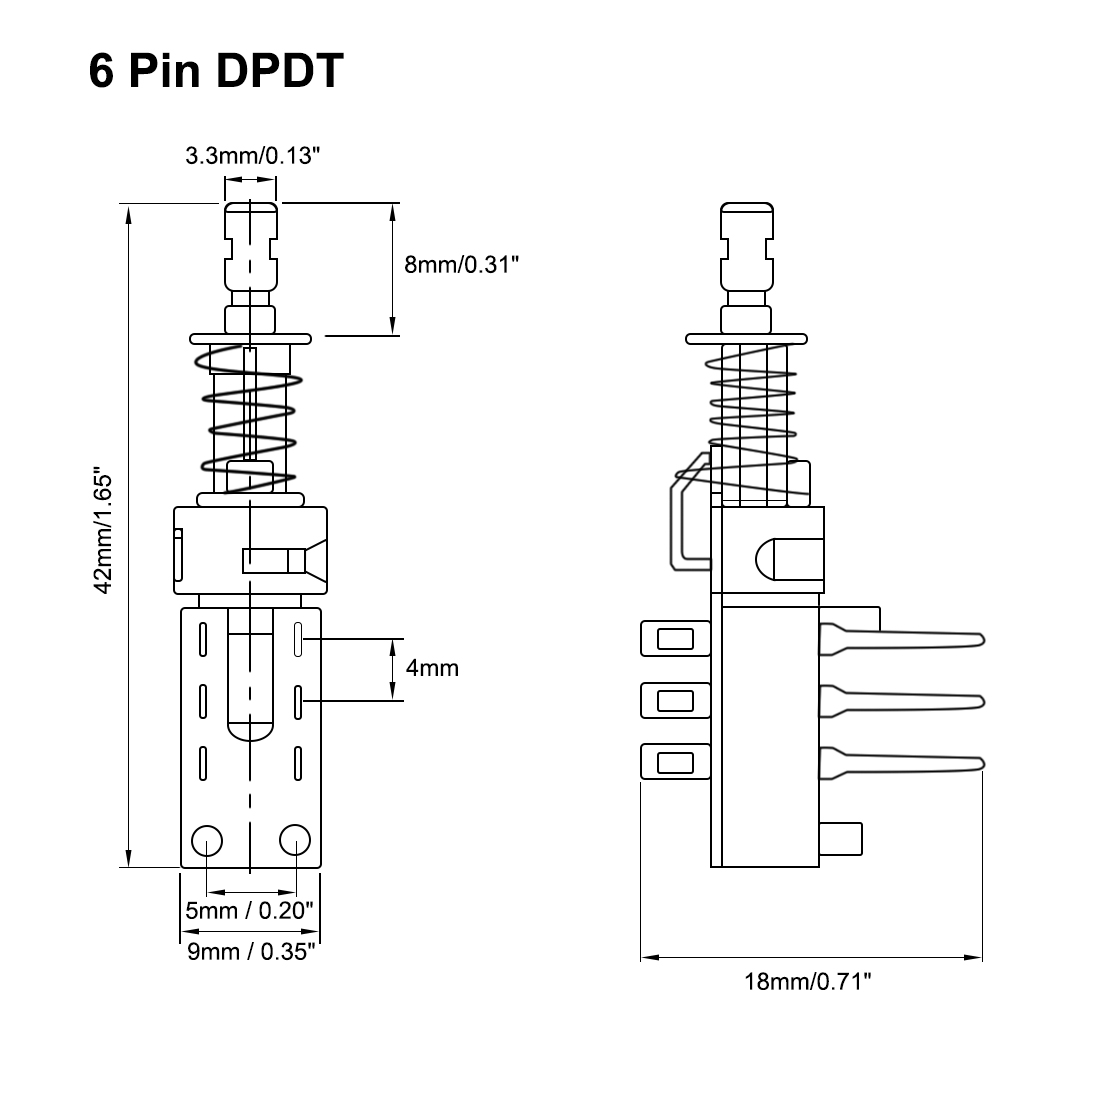 hight resolution of momentary push button switch dpdt 2 pole 6 pin 1 position 2pcs